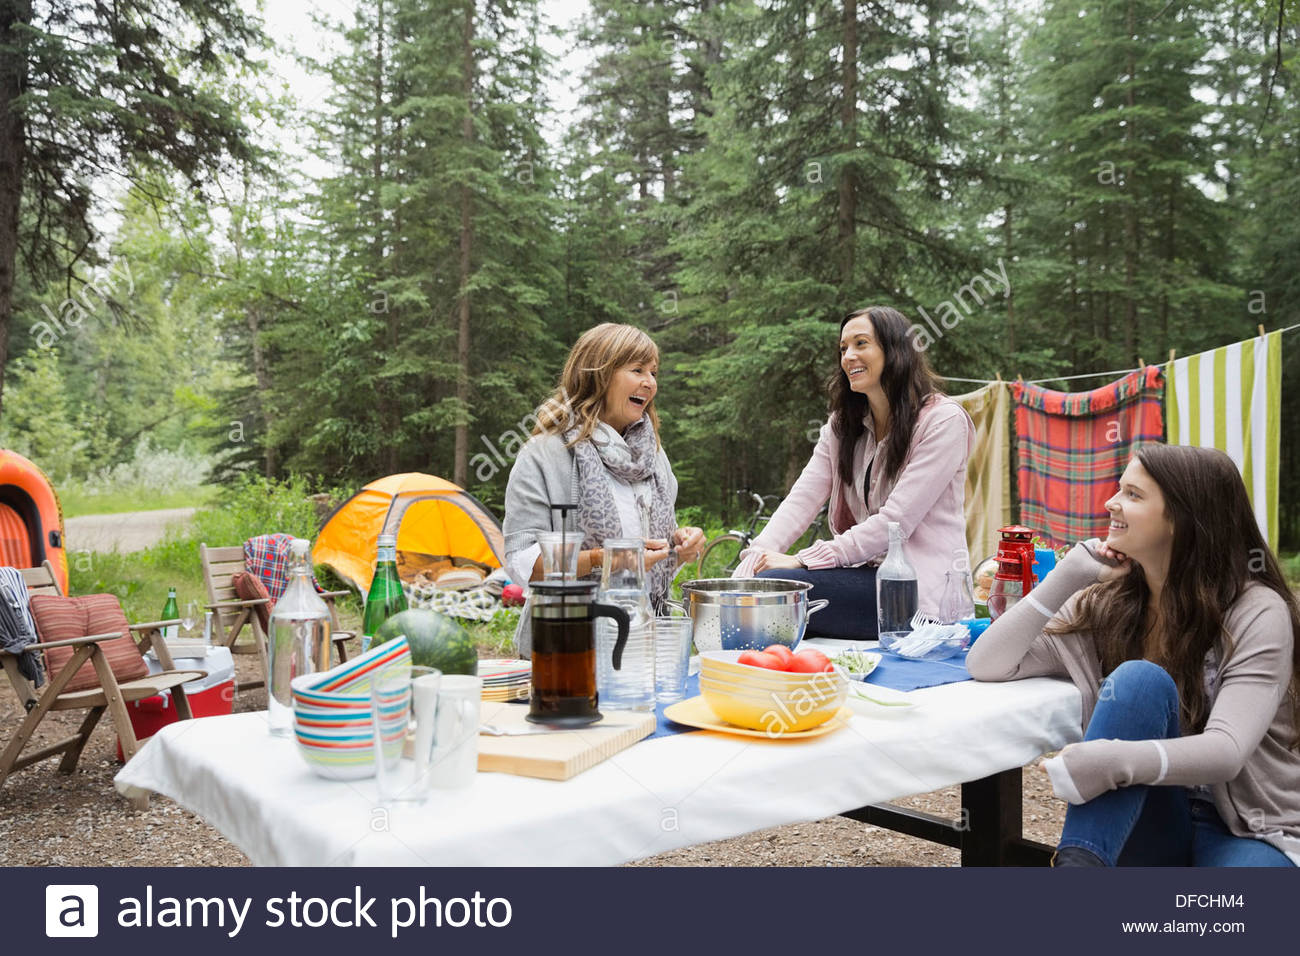 Women gathered at campsite - Stock Image